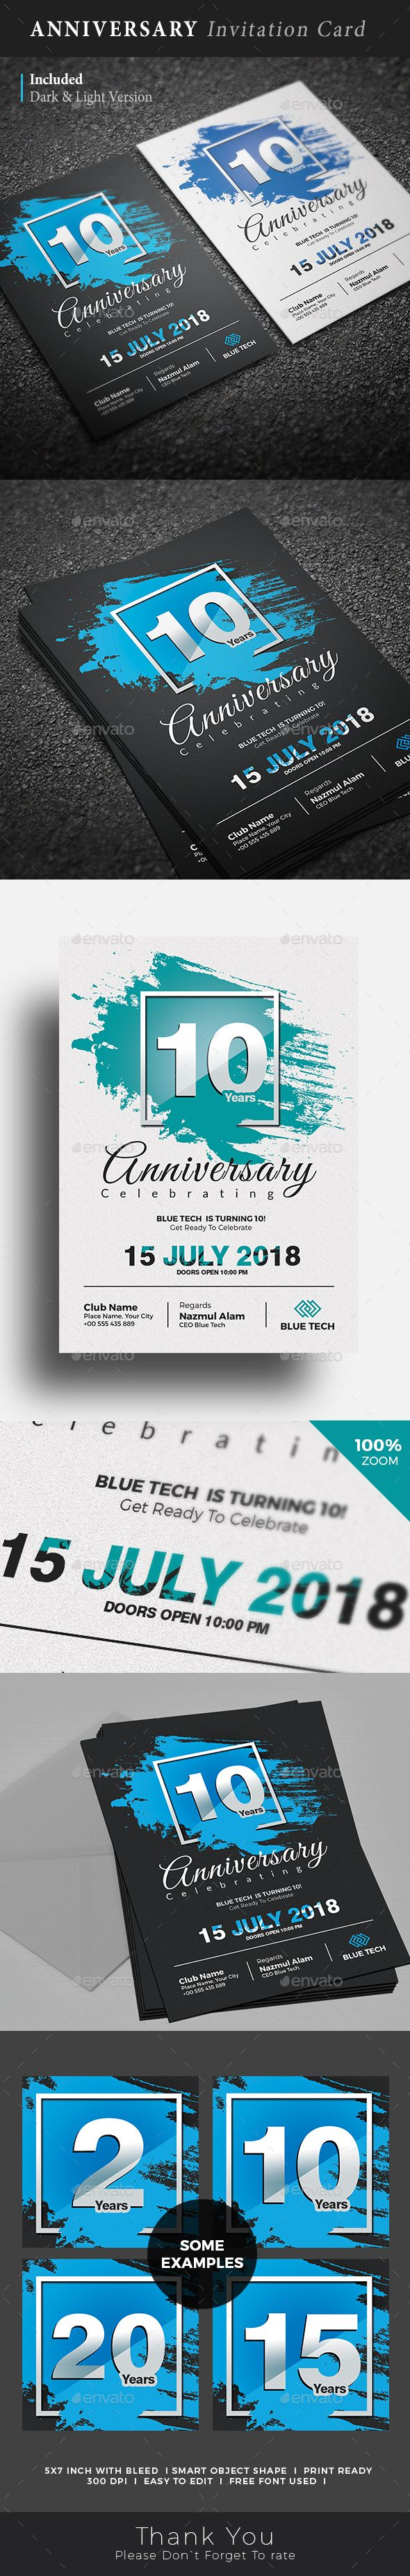 business event invitation templates%0A Anniversary Invitation  Invitation Card DesignInvitation CardsParty  InvitationsCorporate